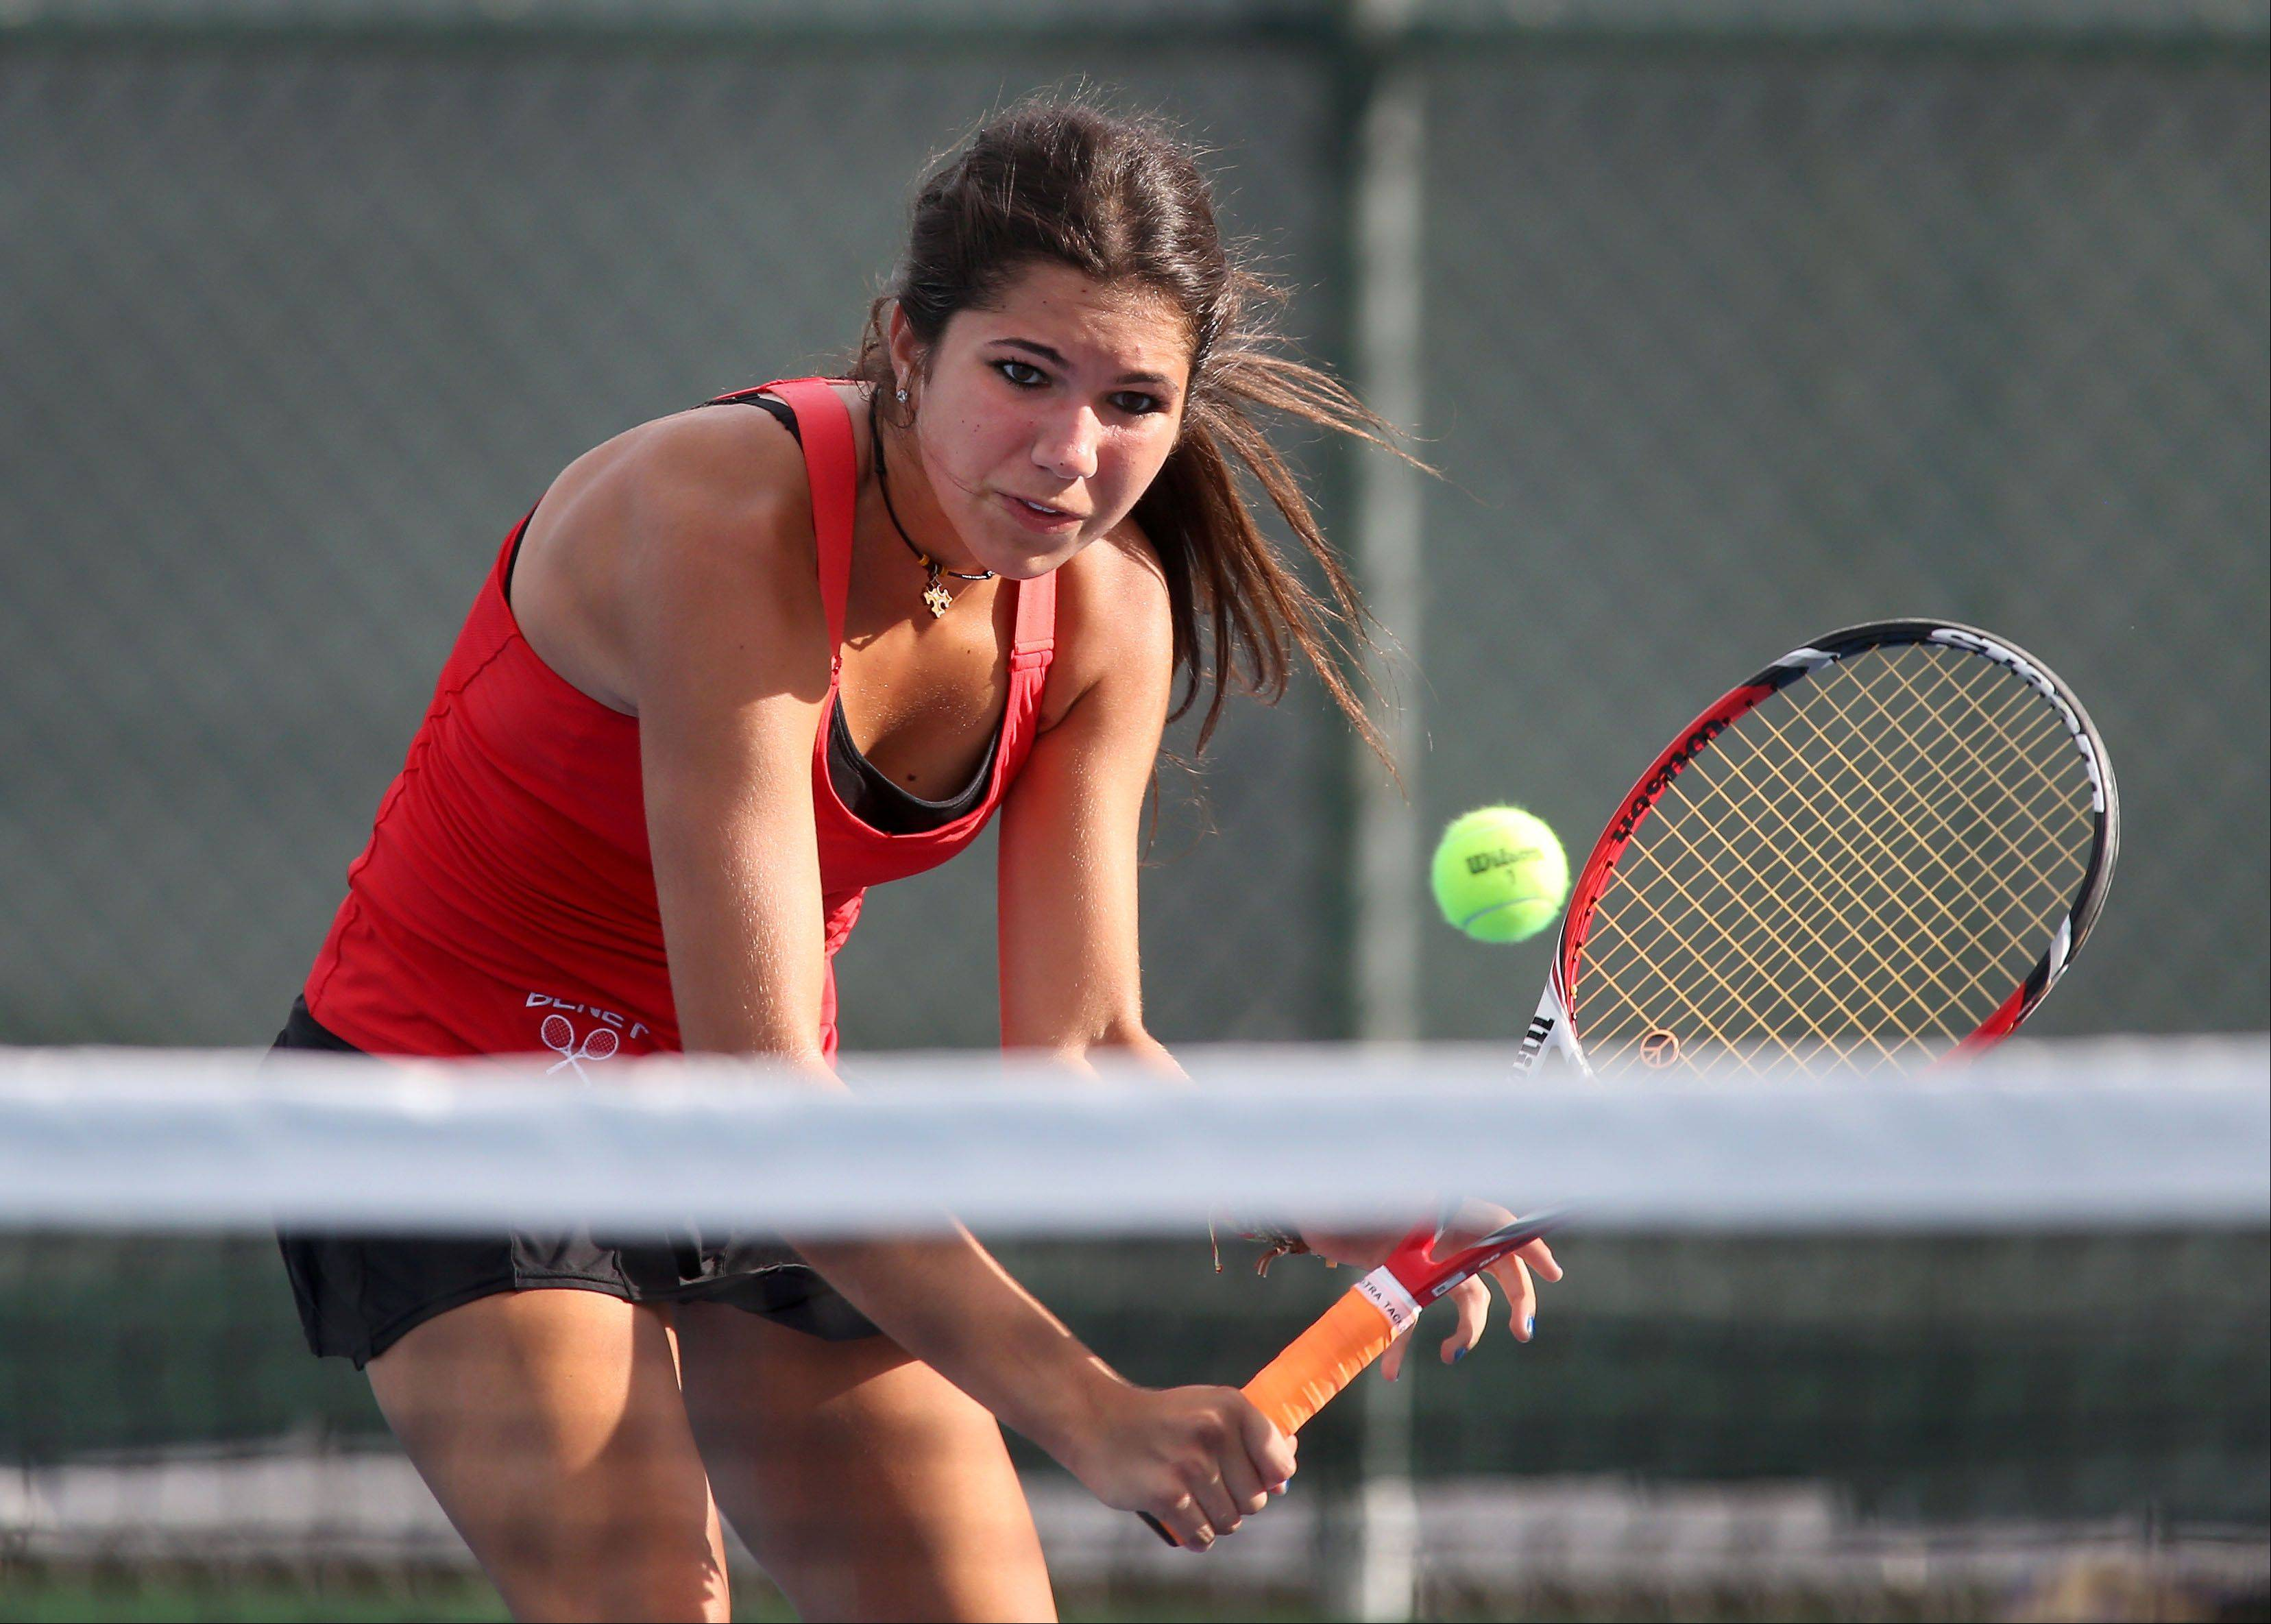 Leah Tzakis of Benet moves up for a volley in tennis action against Naperville Central on Tuesday in Naperville.